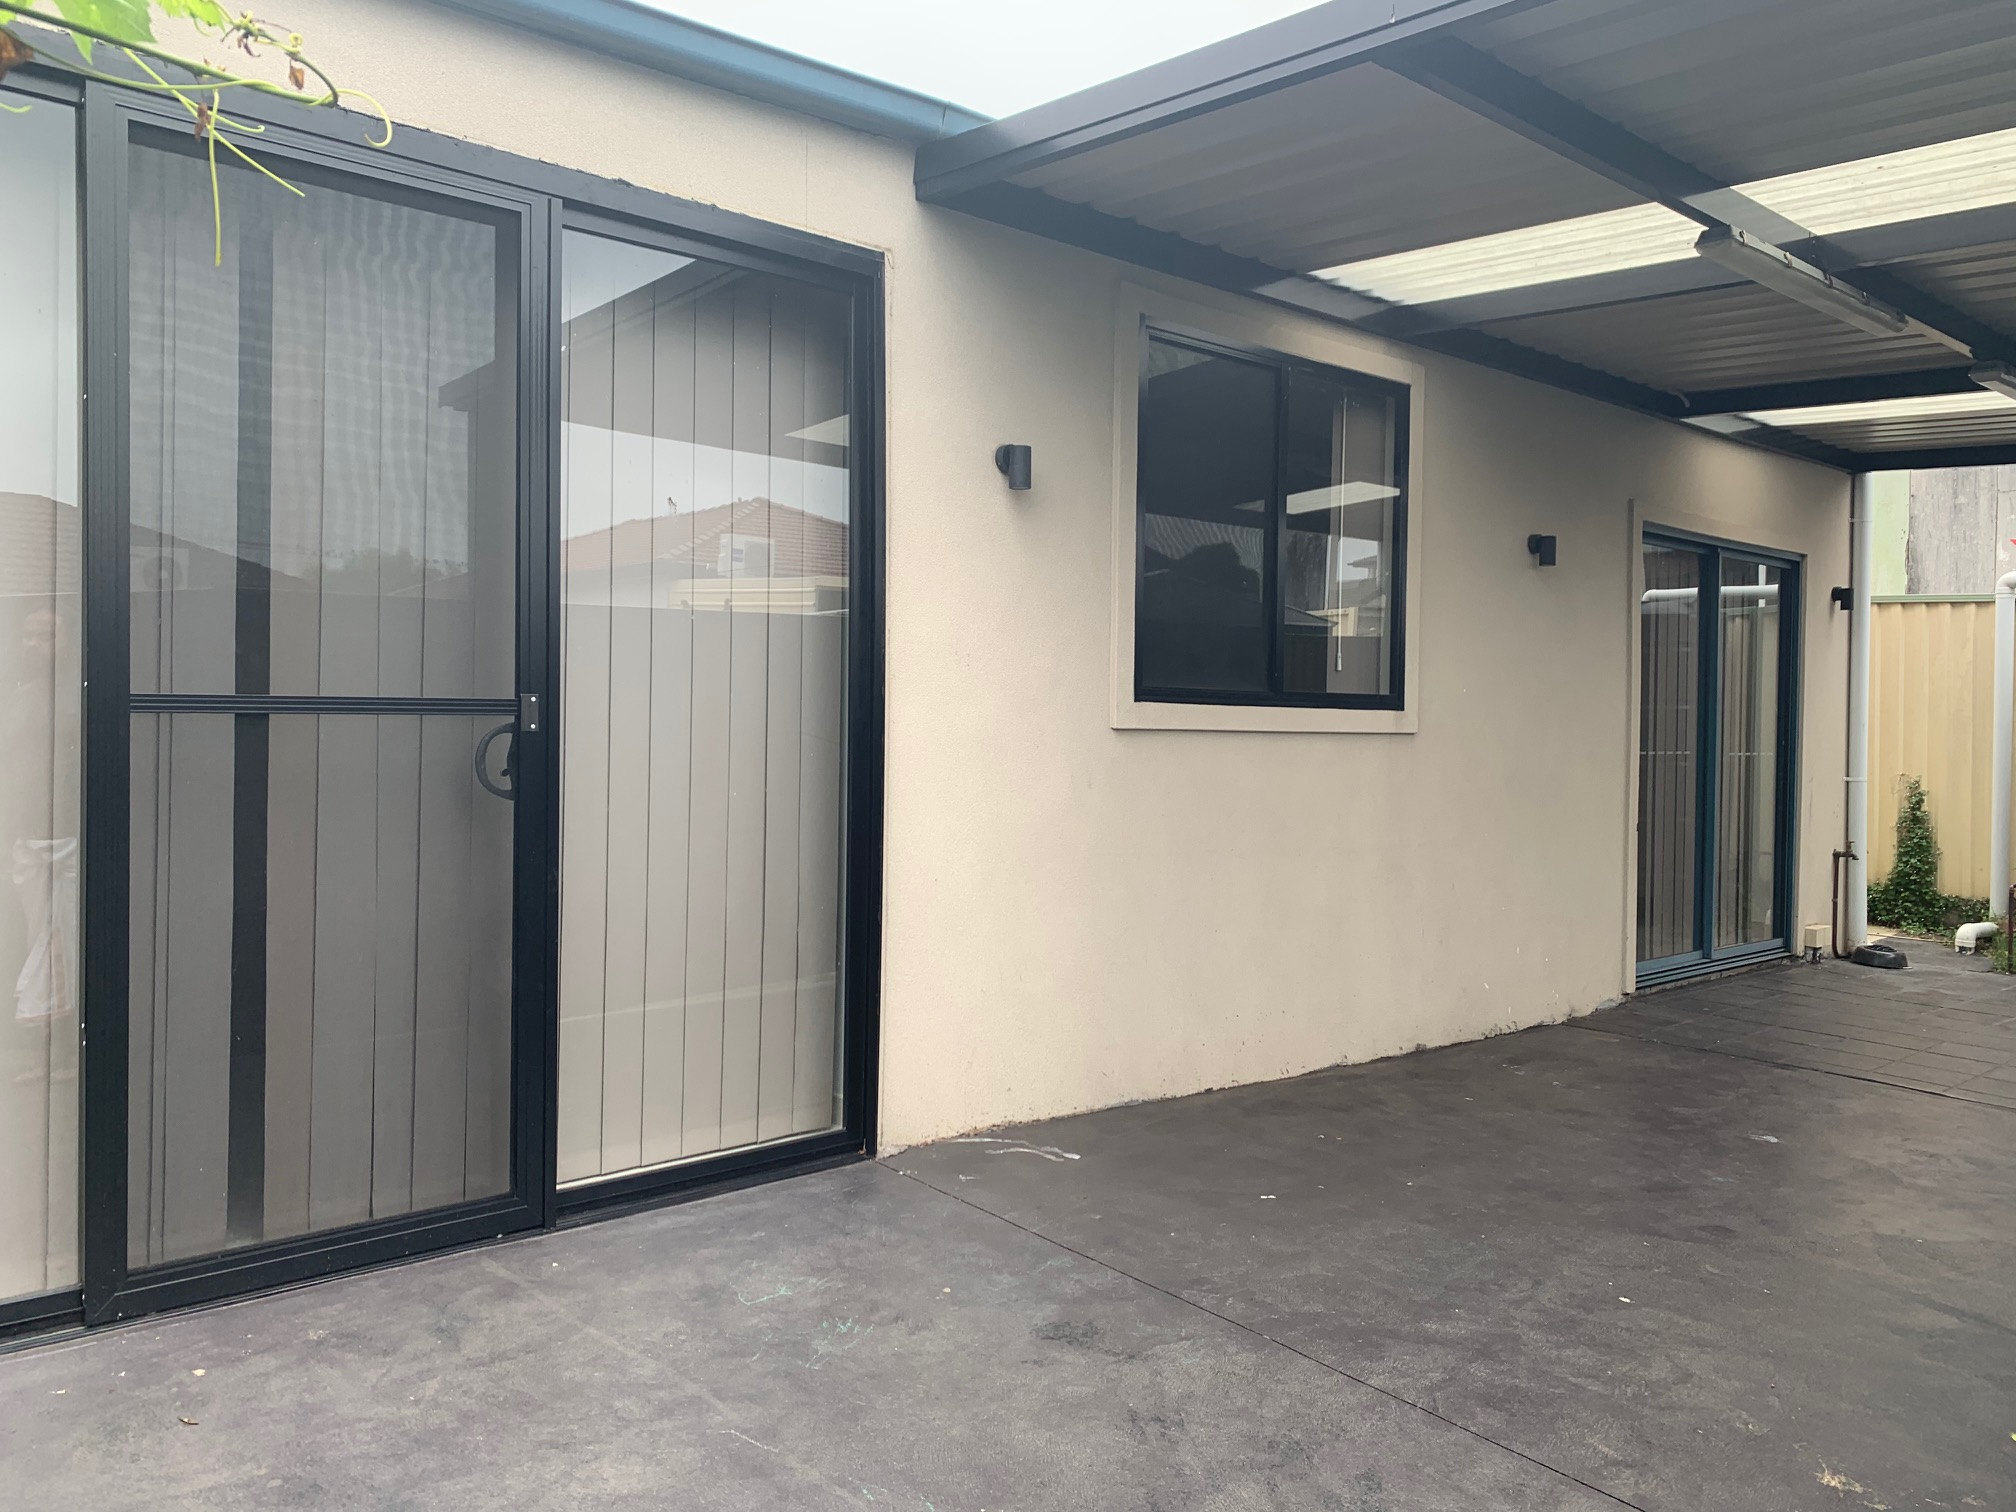 2 BEDROOM GRANNY FLAT FOR LEASE